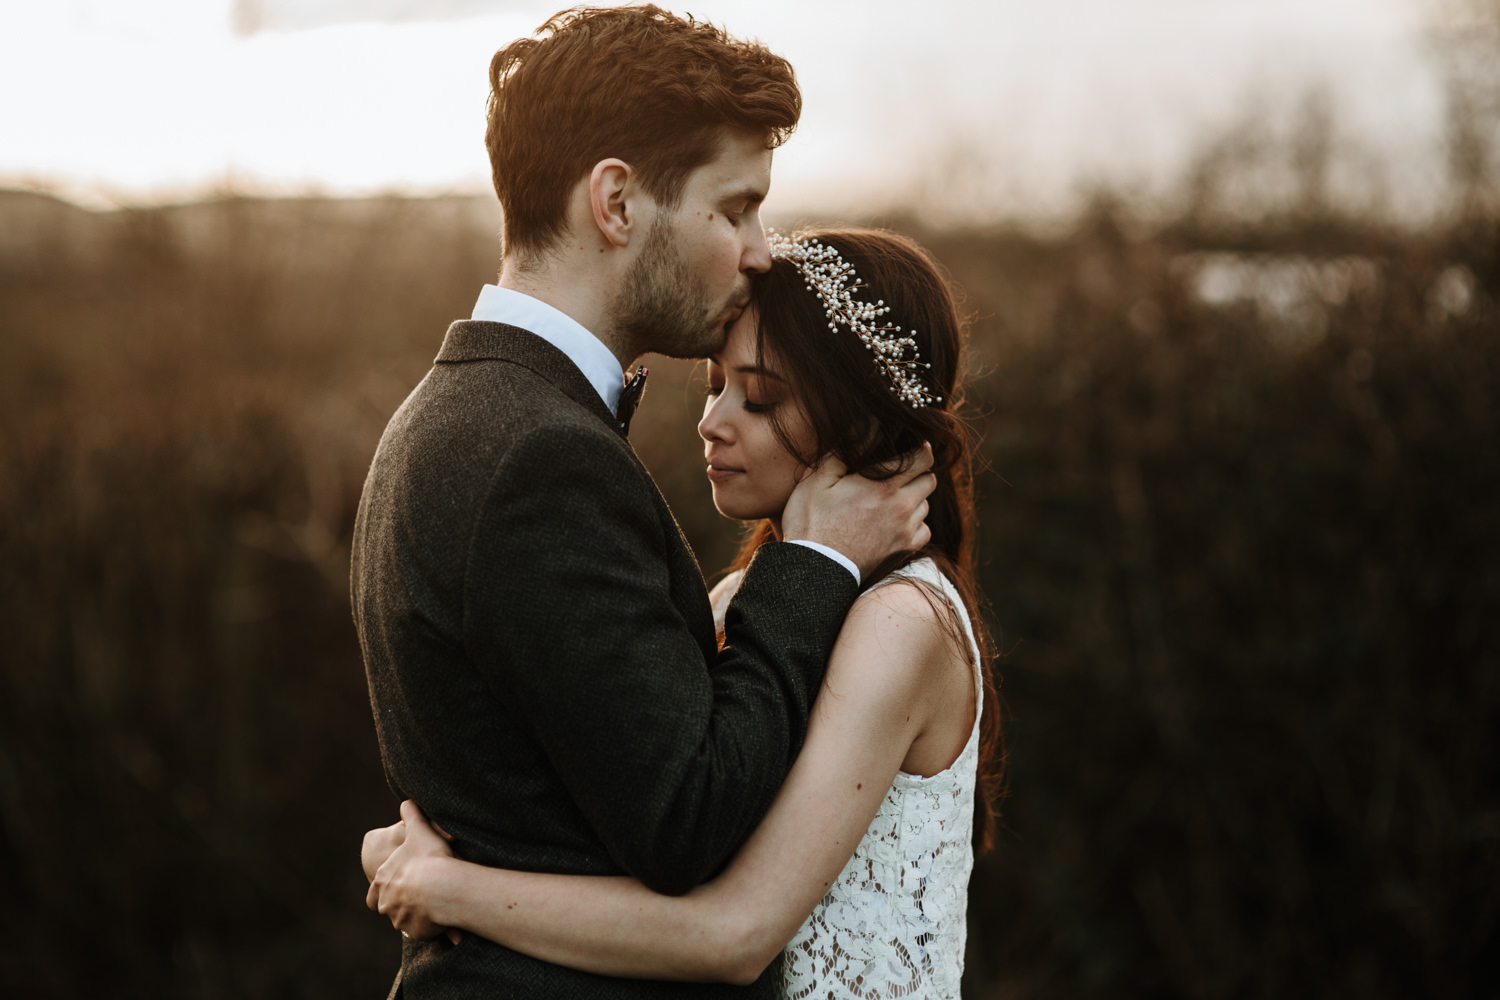 wedding couple kissing on the forehead during their portraits by Bristol Wedding photographers